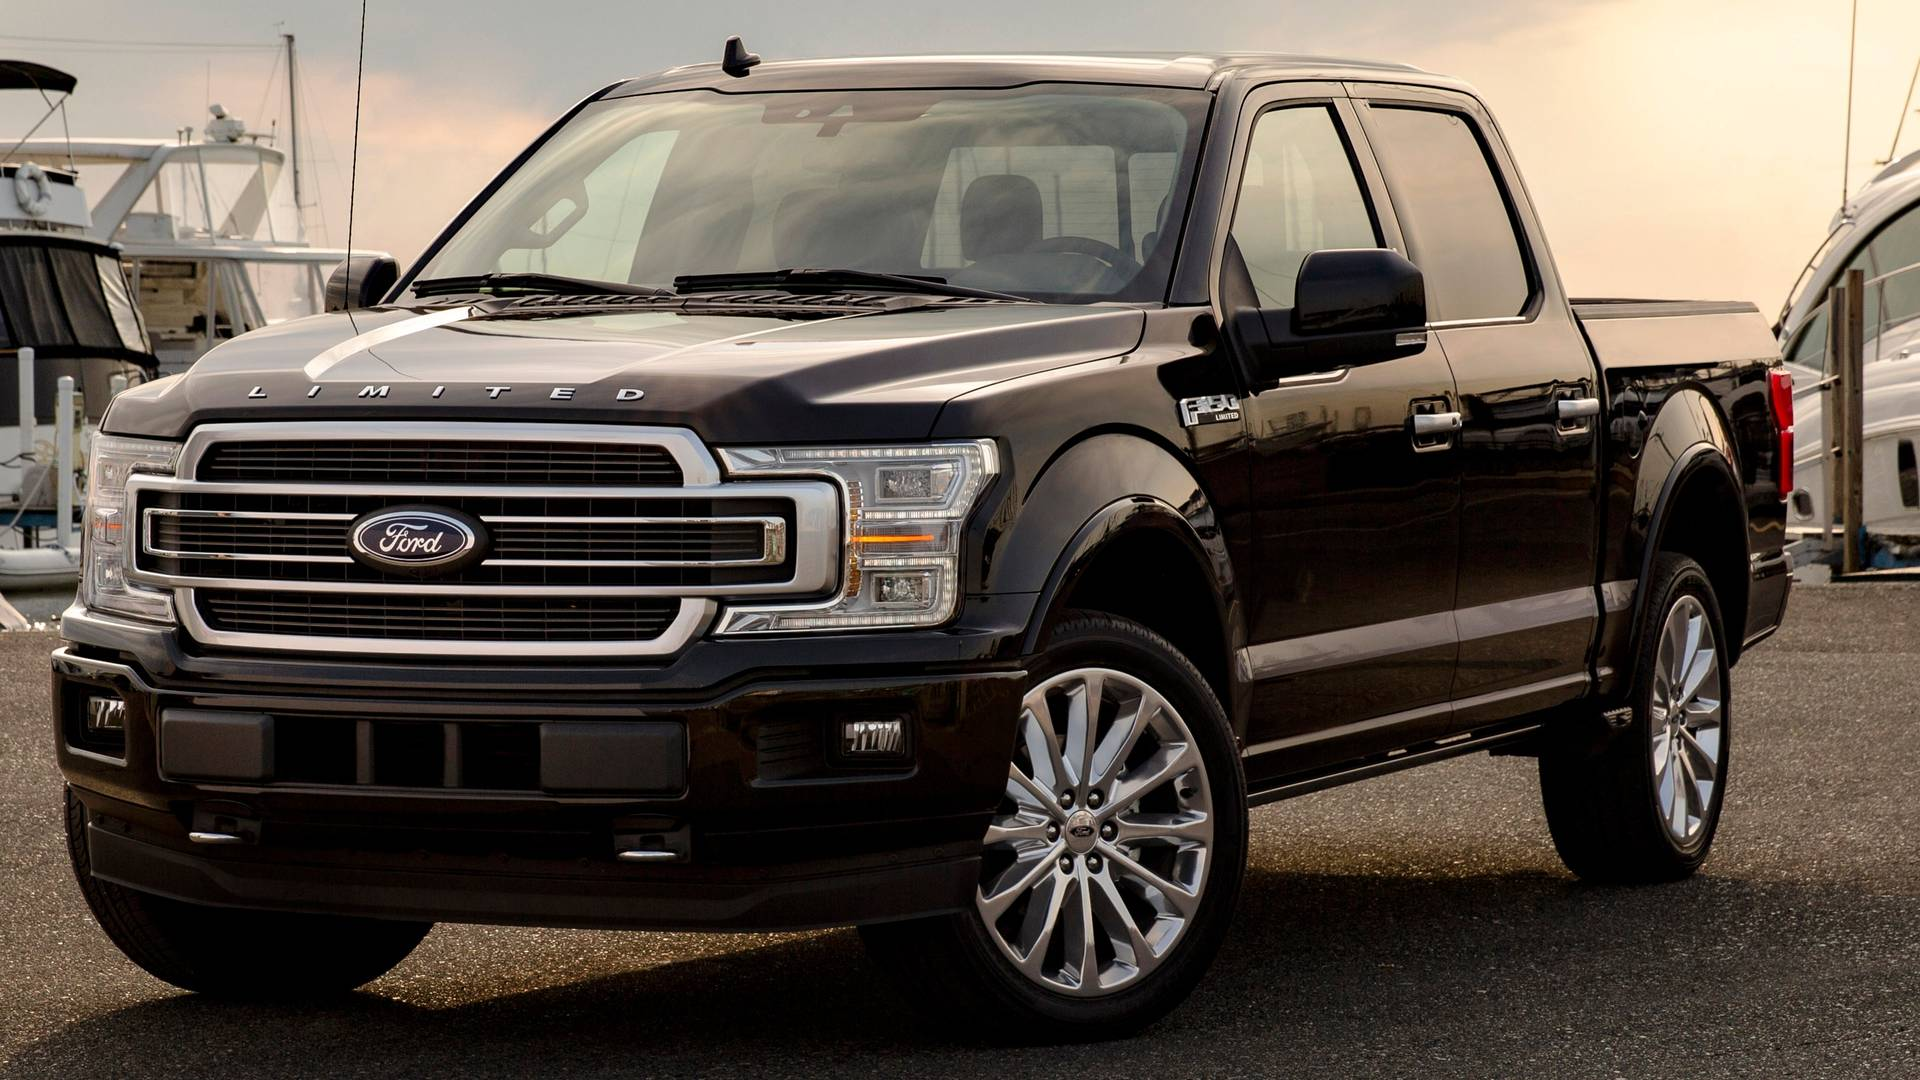 42 The The F150 Ford 2019 Price And Release Date Picture